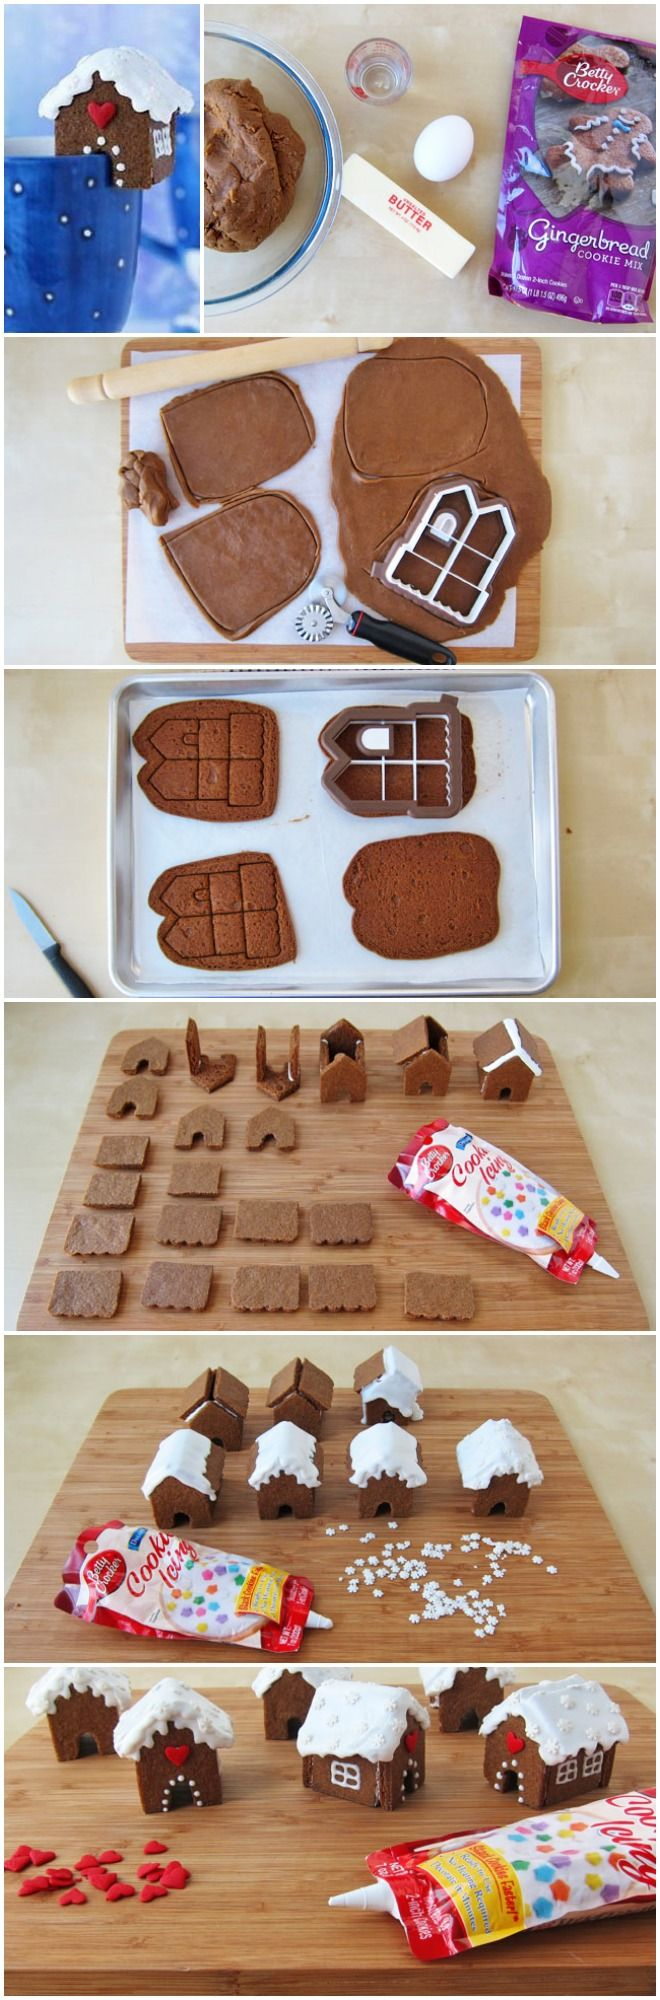 Mini gingerbread houses - the ones with real gingerbread! - will have to get my hands on this cutter!